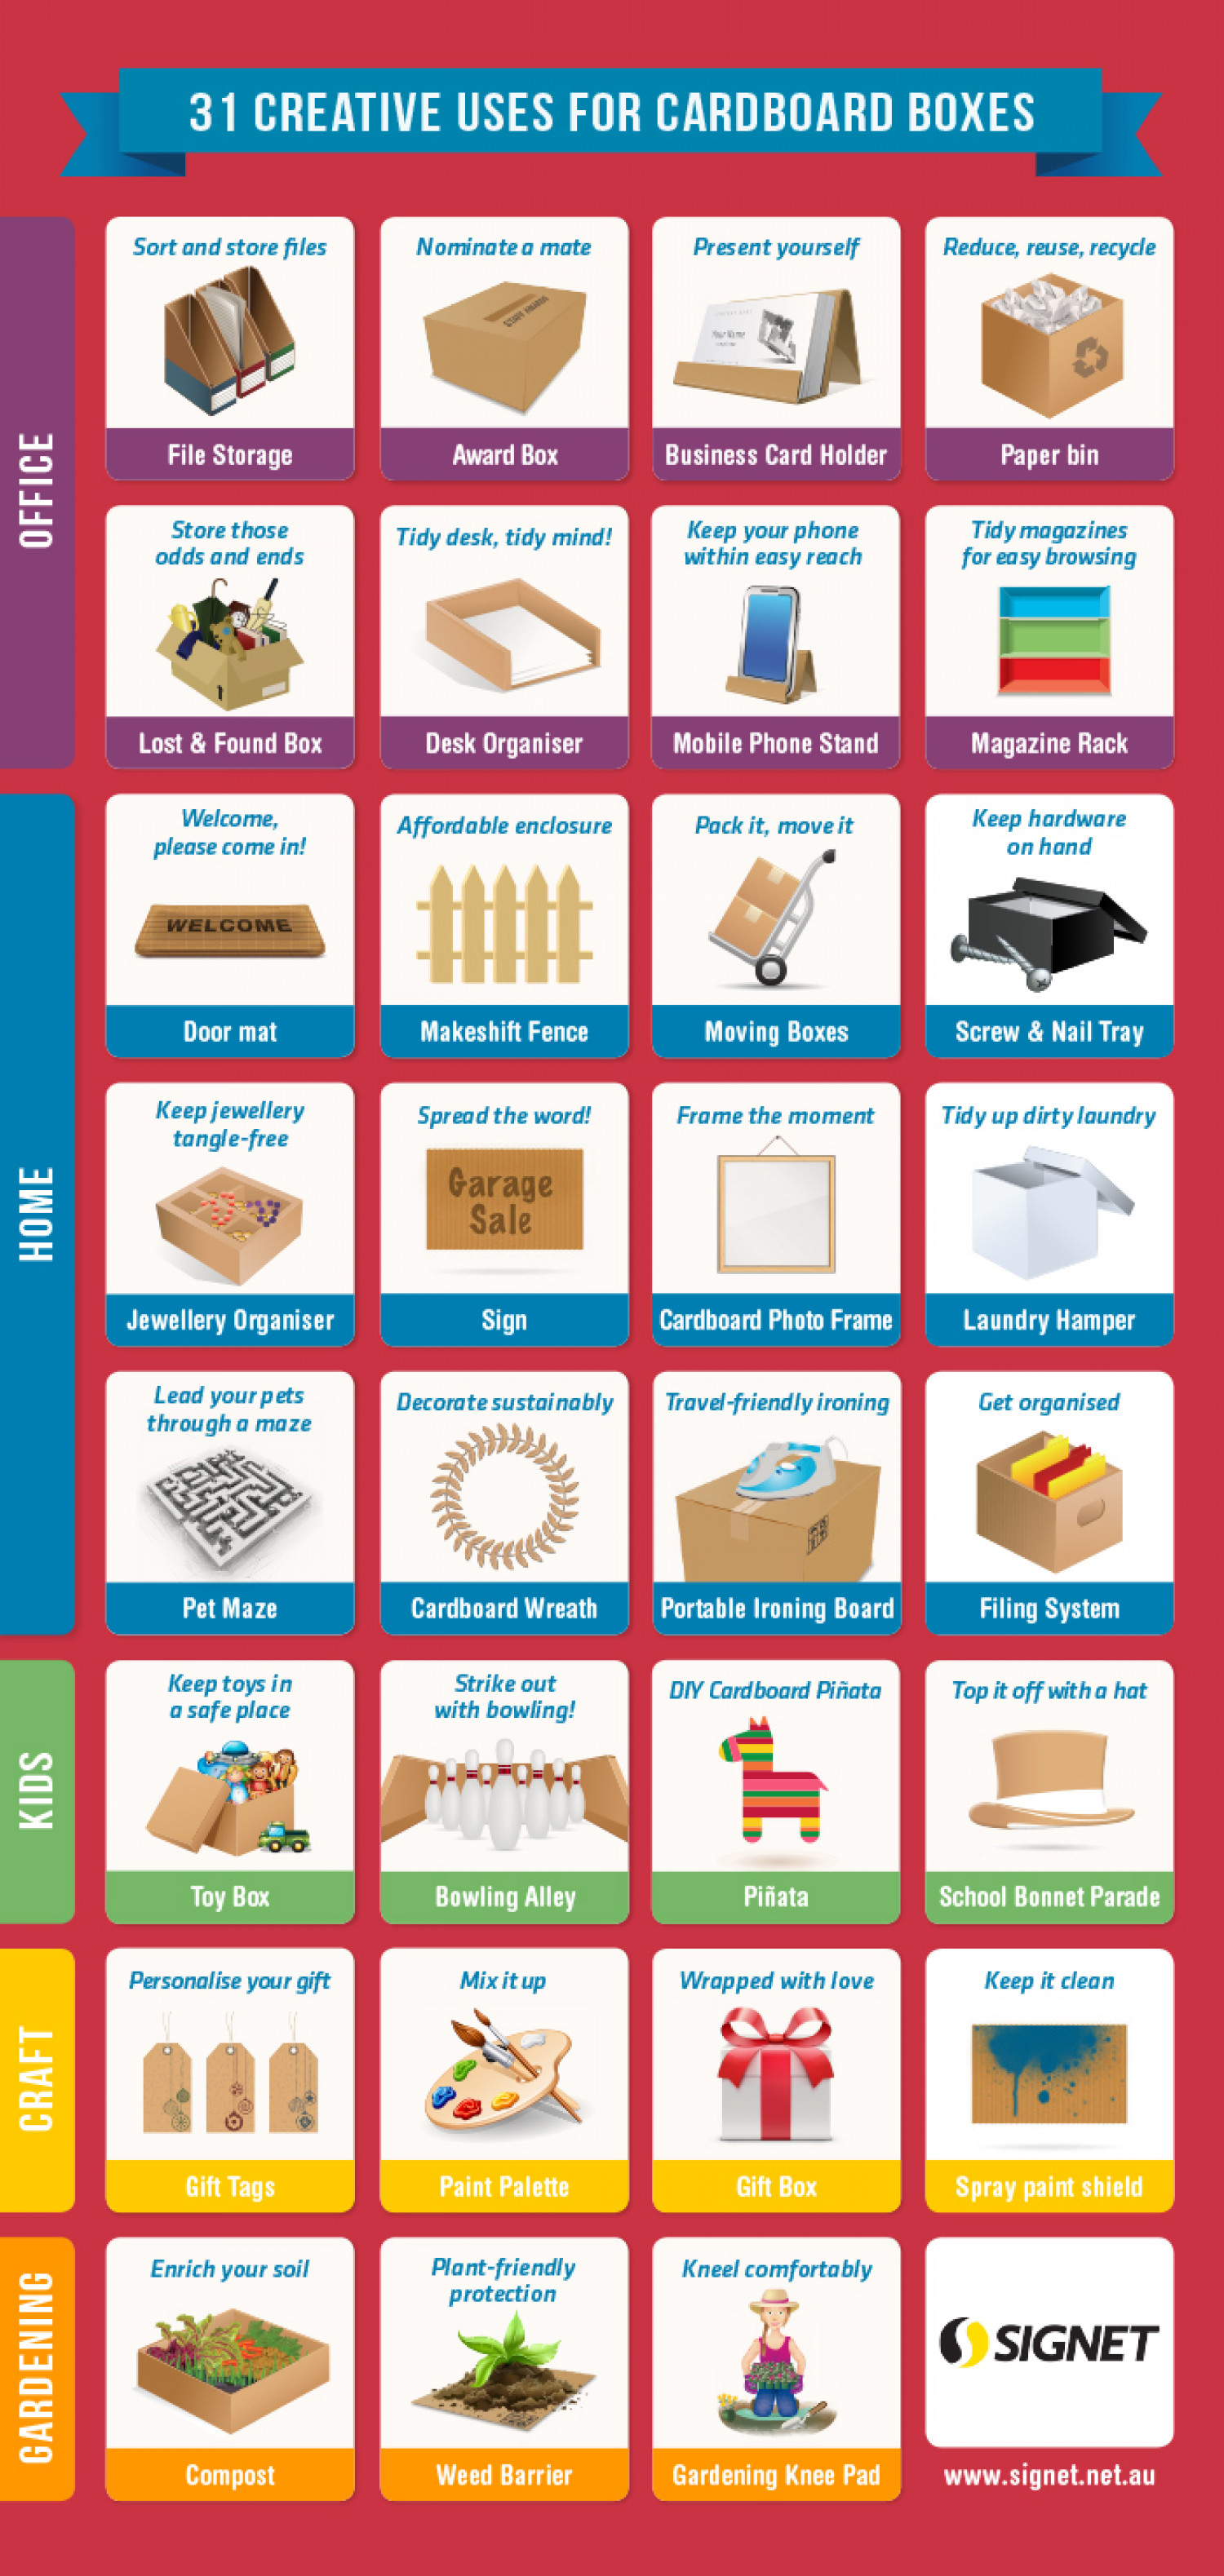 31 Creative Uses For Cardboard Boxes Infographic